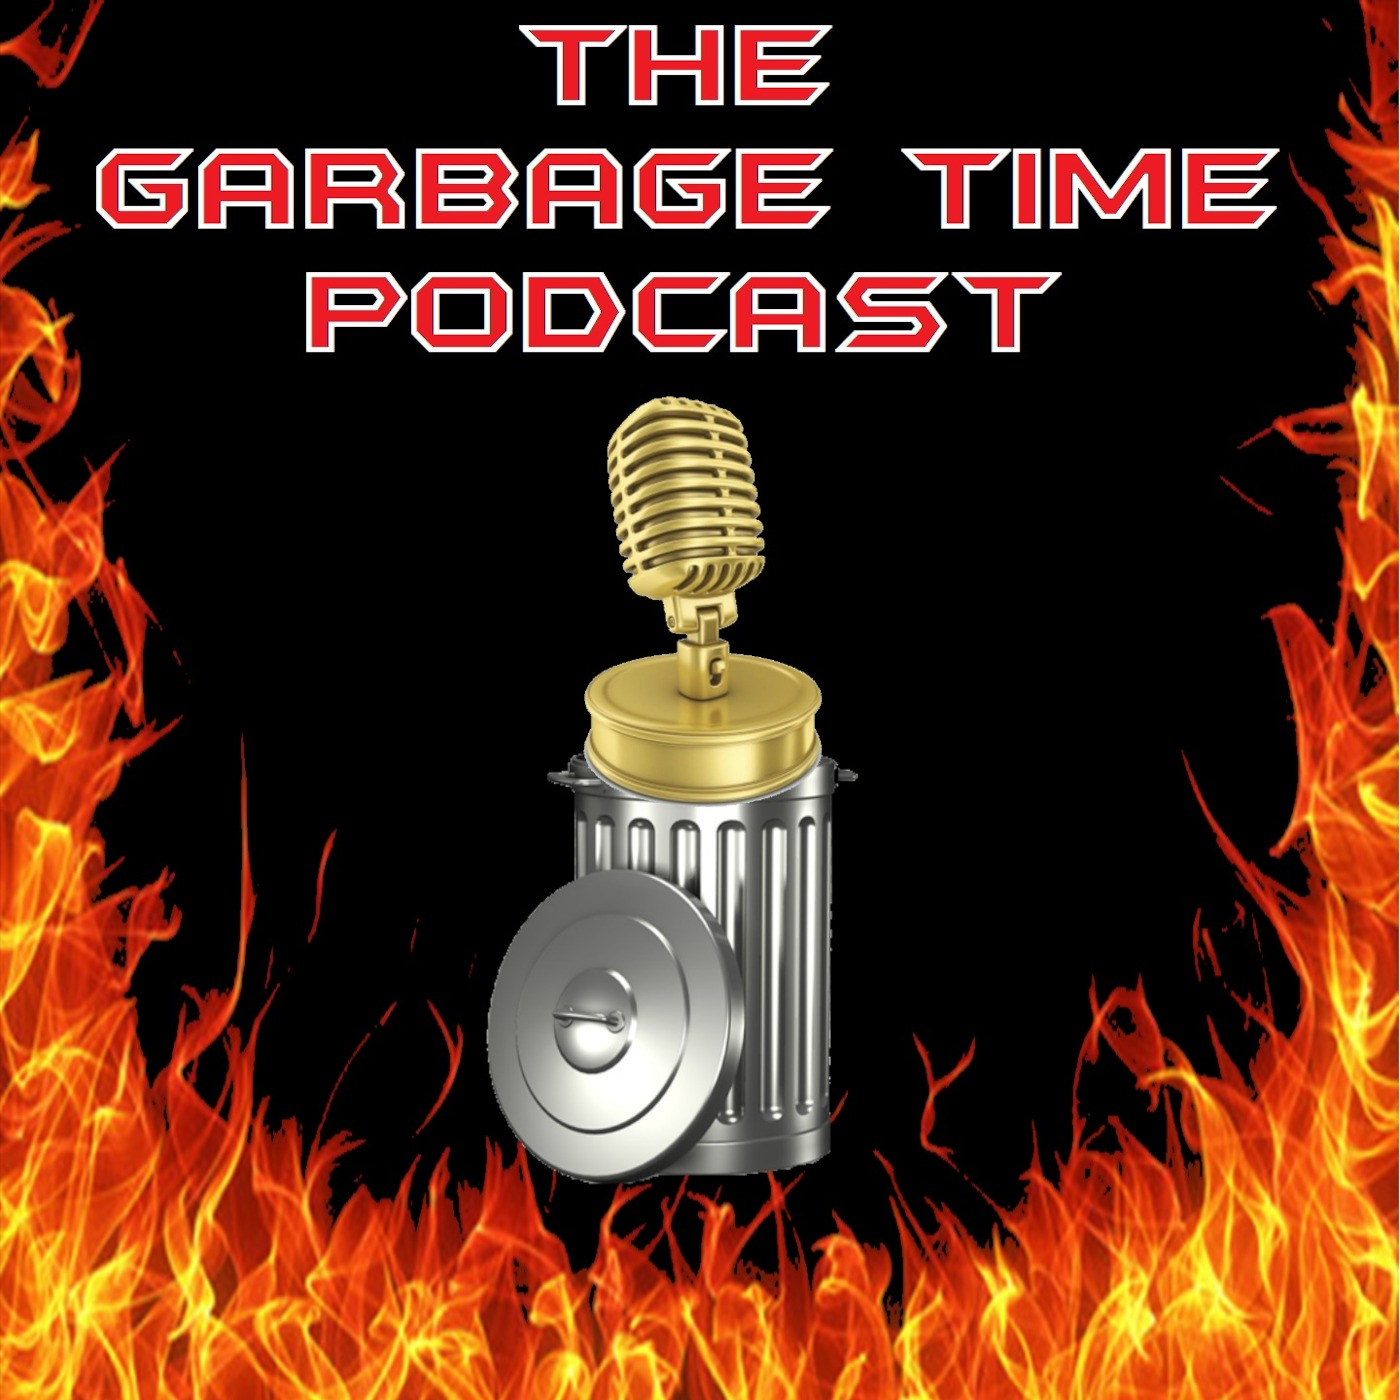 Garbage Time Podcast